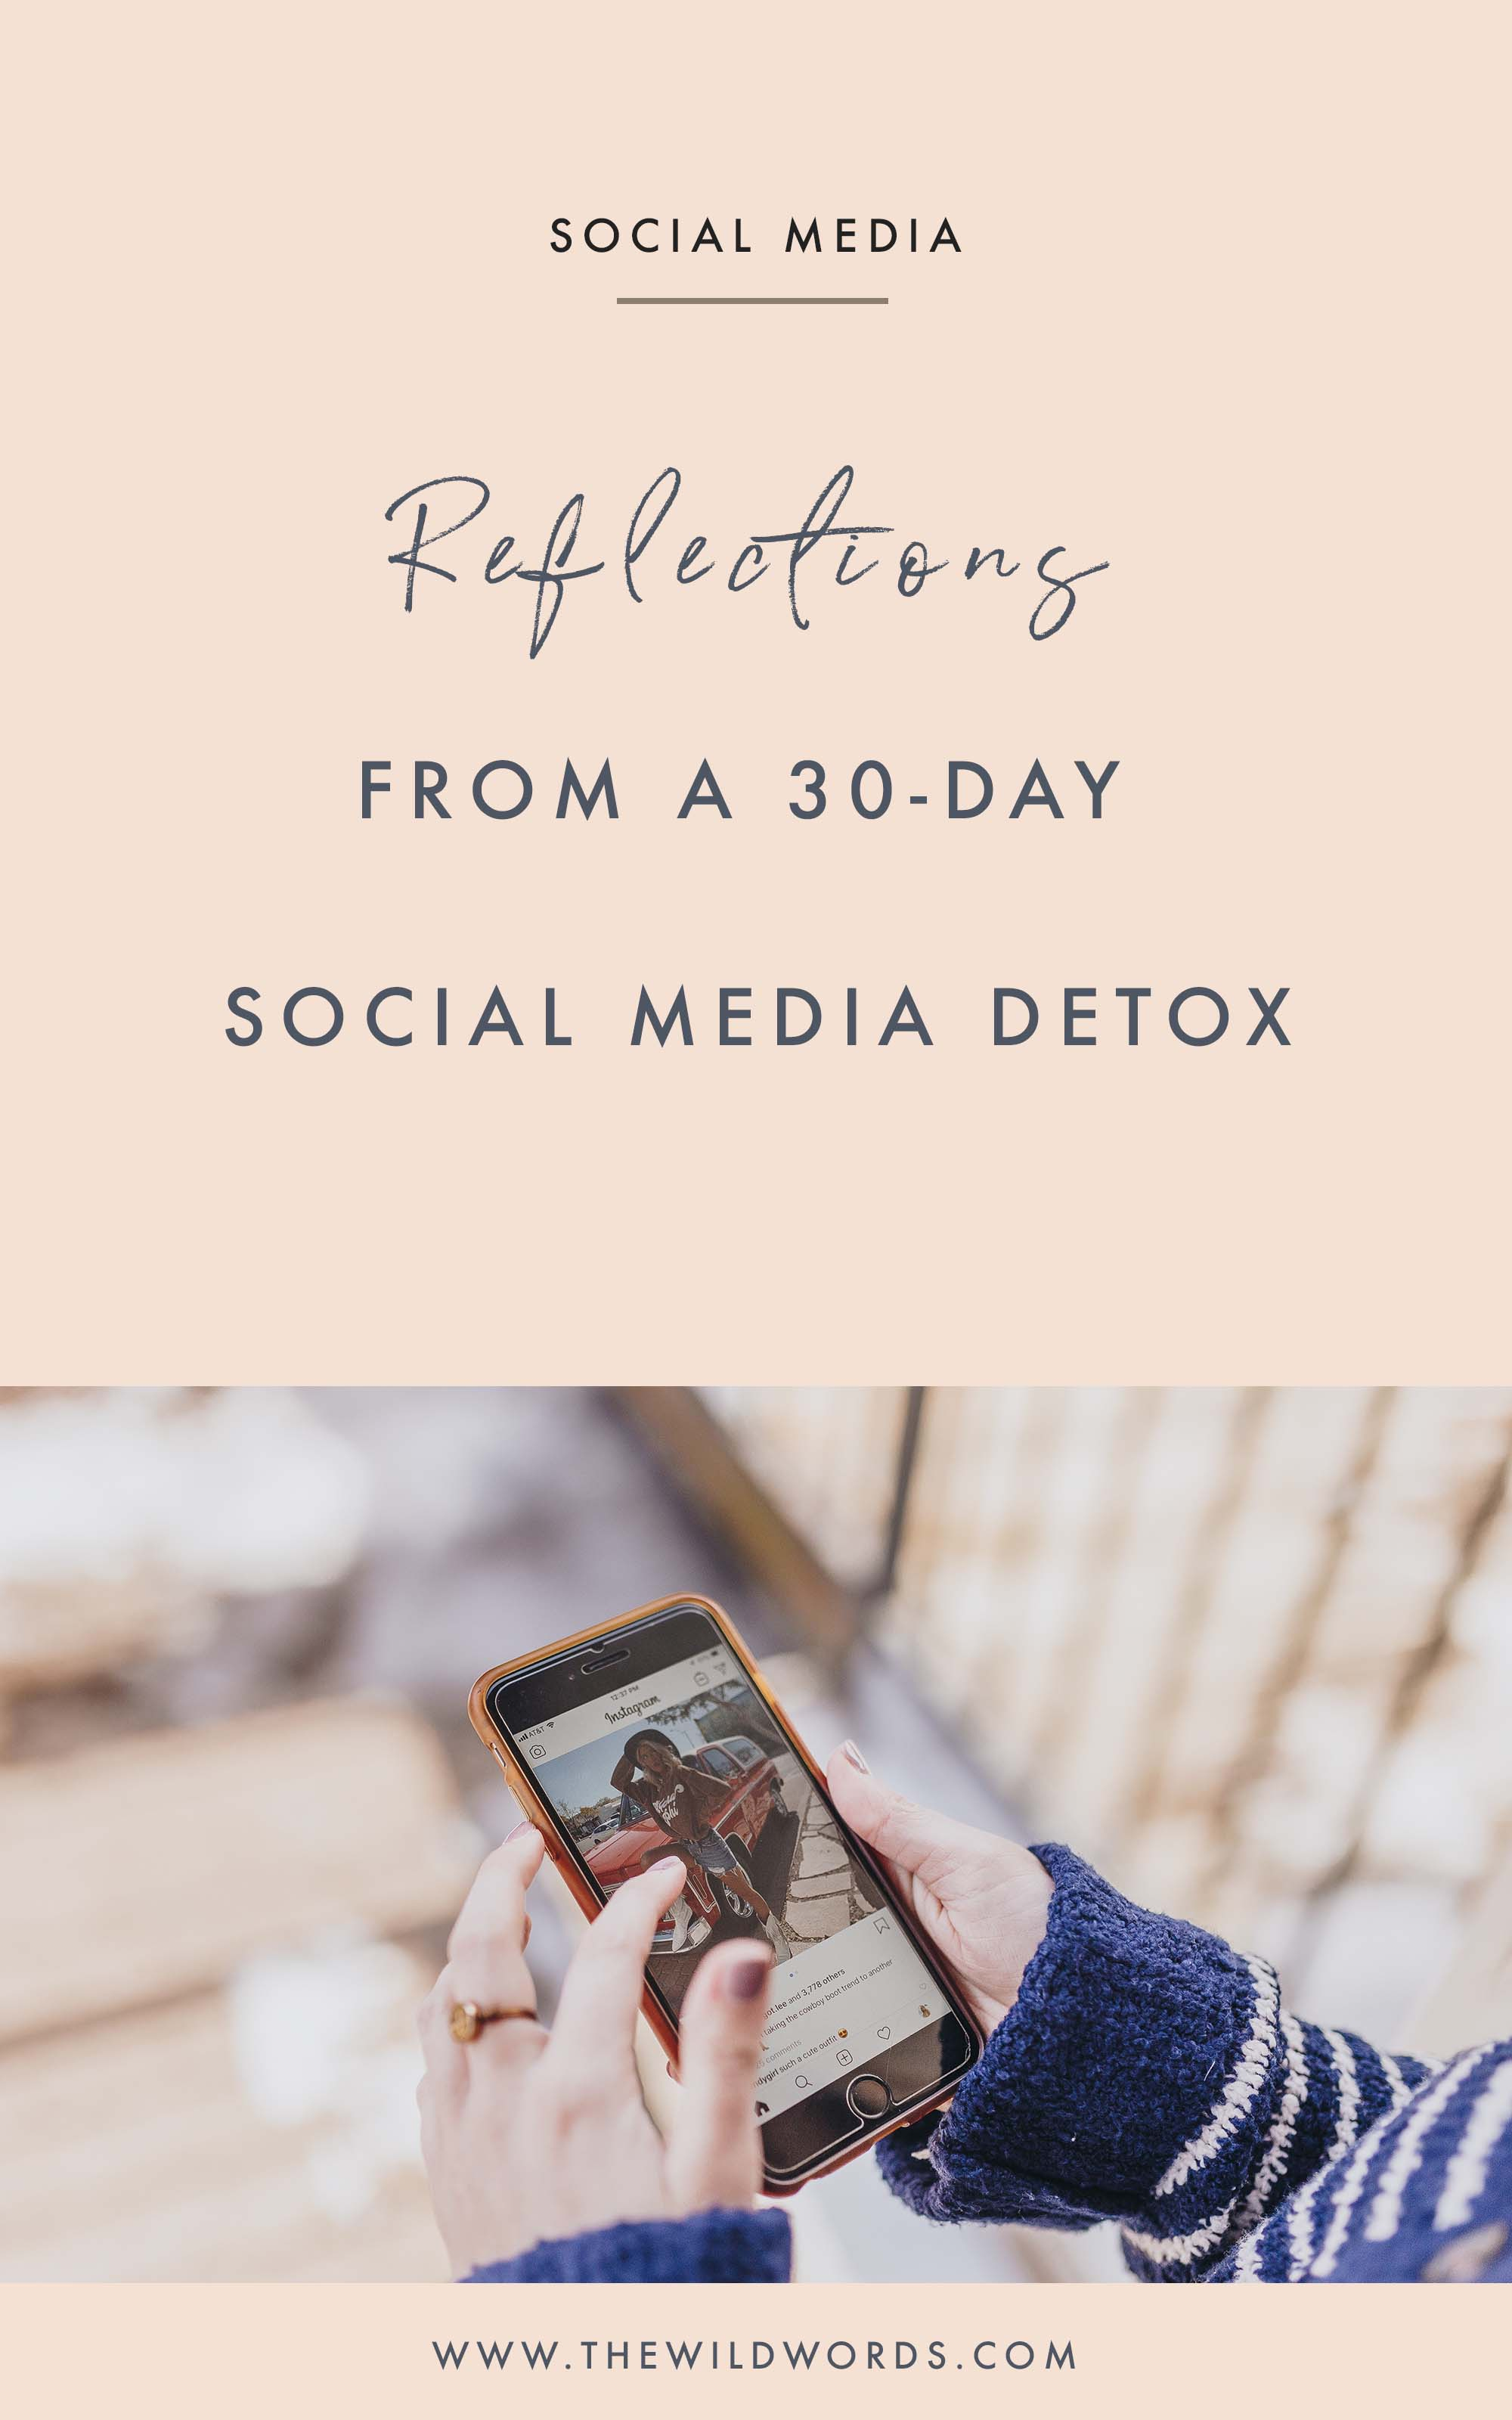 Rethinking Social Media: Reflections From a 30-Day Break